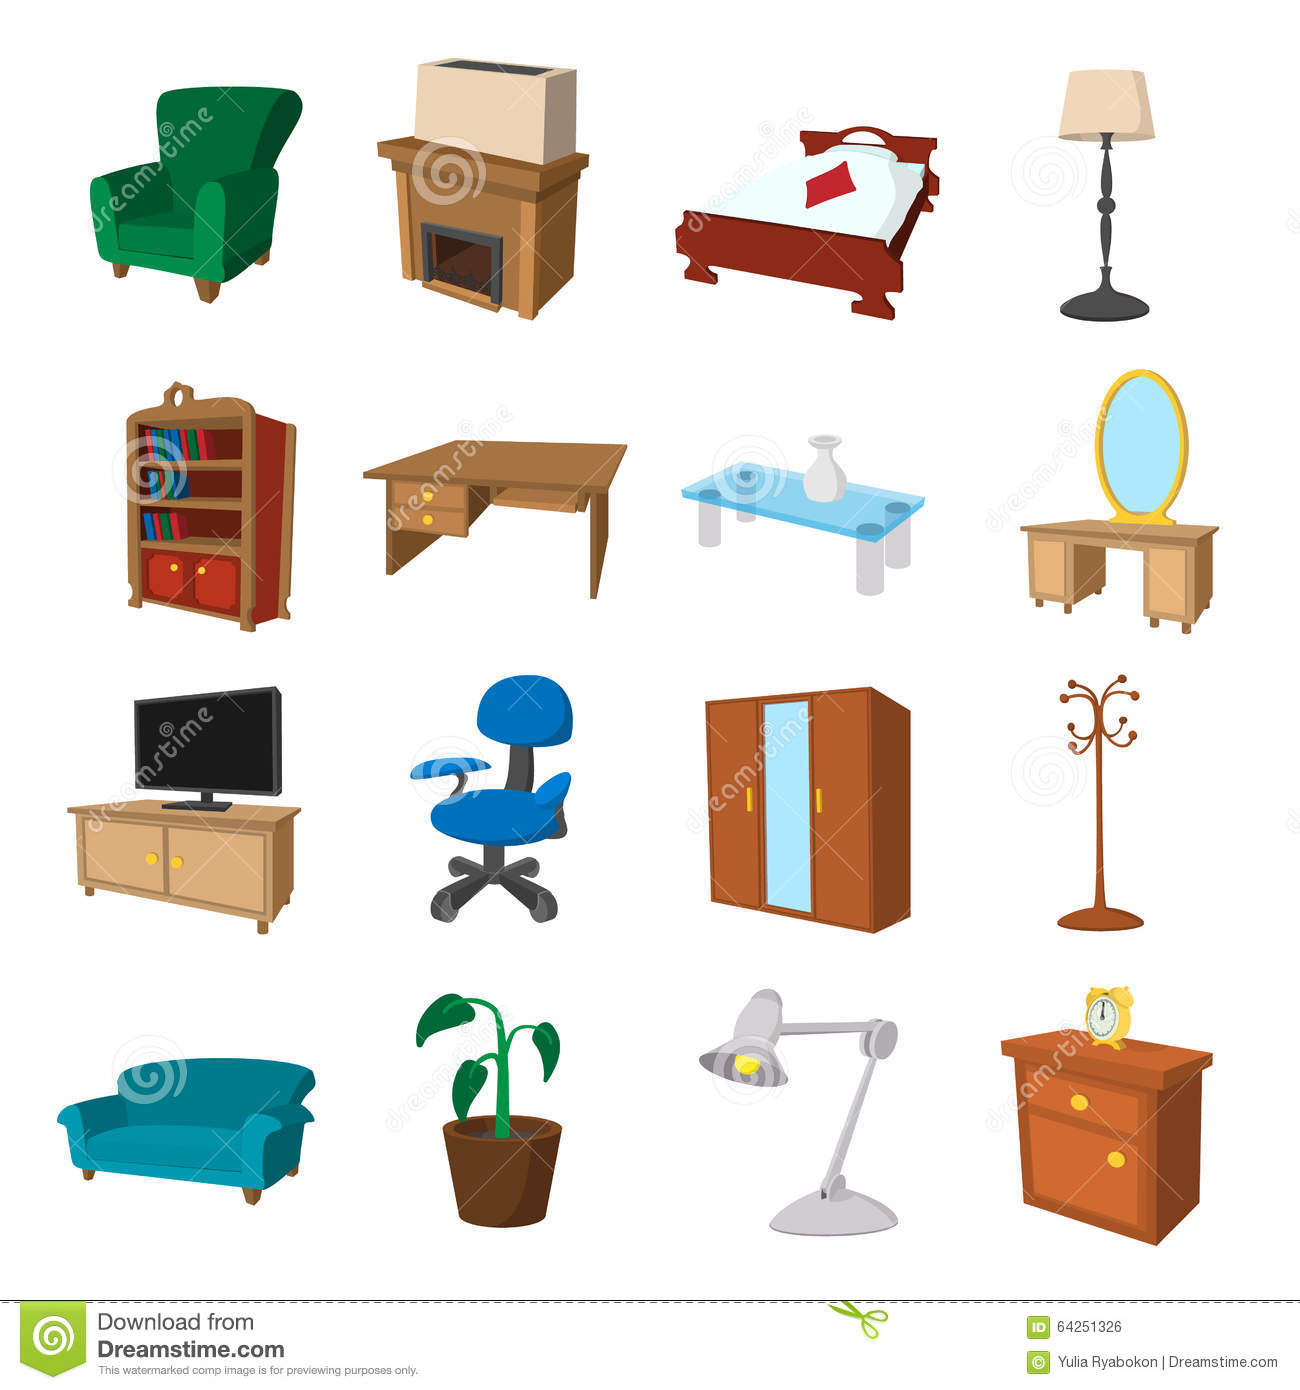 Cartoon Kitchen Furniture: Furniture Cartoon Icons Set Stock Vector